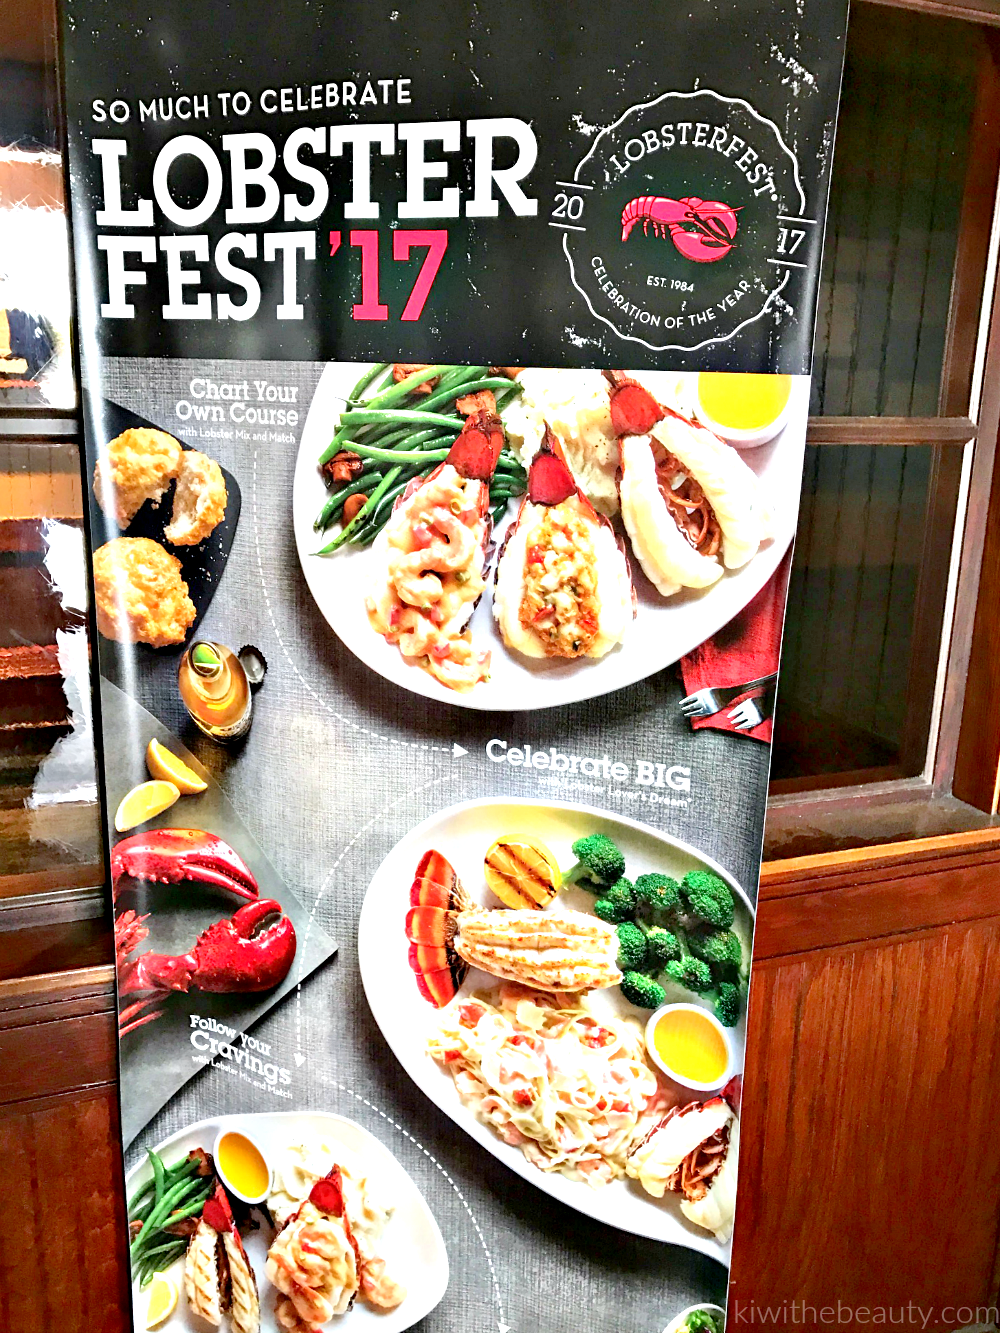 red-lobster-lobsterfest-celebrate-lobster-review-kiwi-the-beauty-3